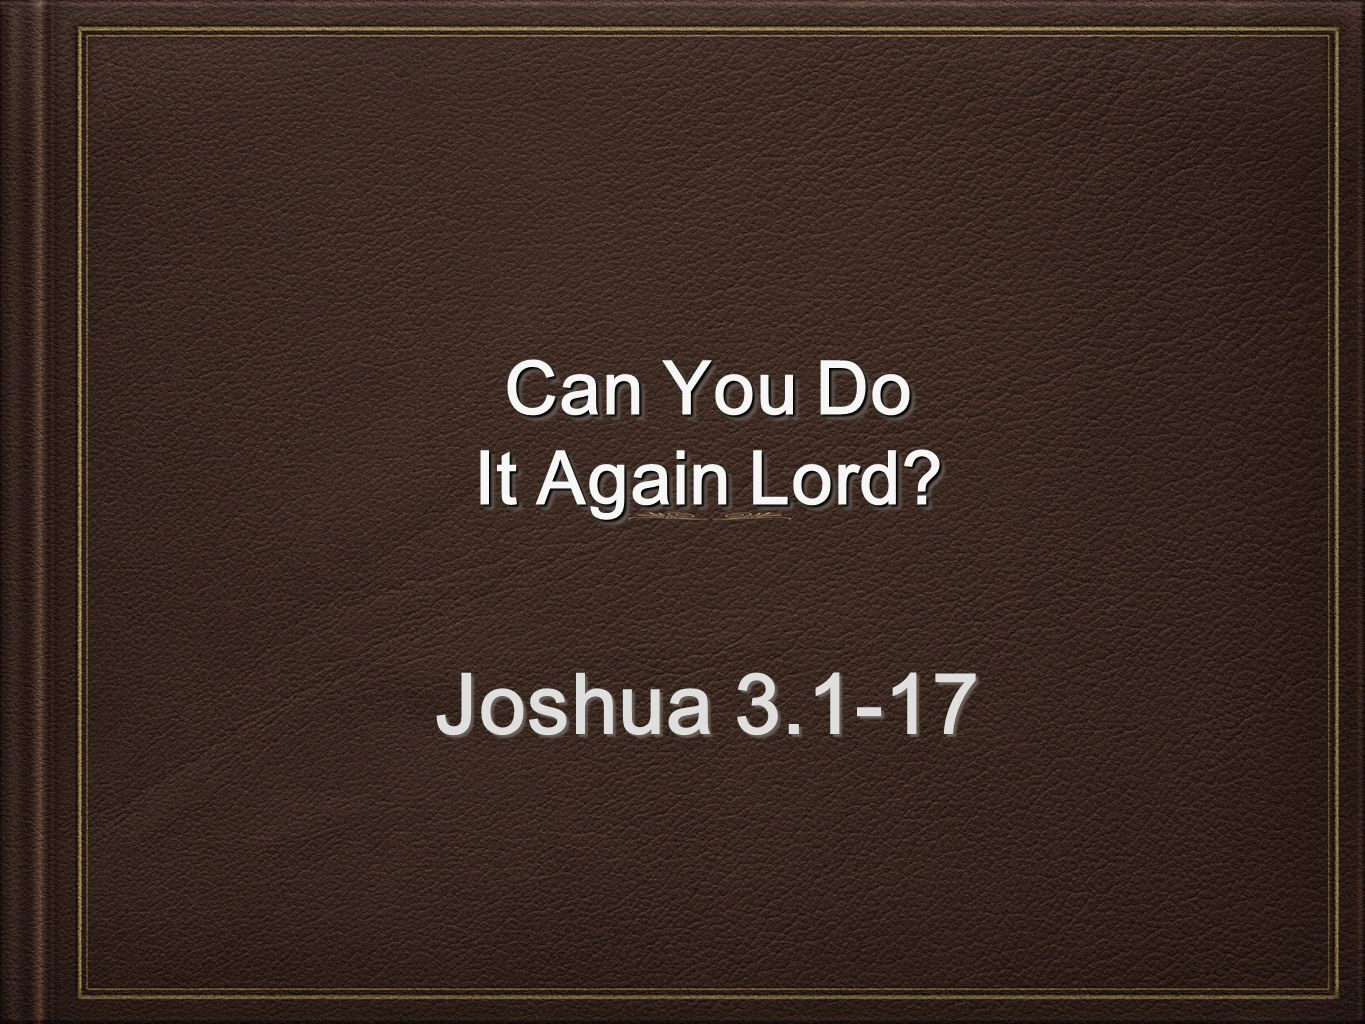 Can You Do It Again Lord Joshua 3.1-17